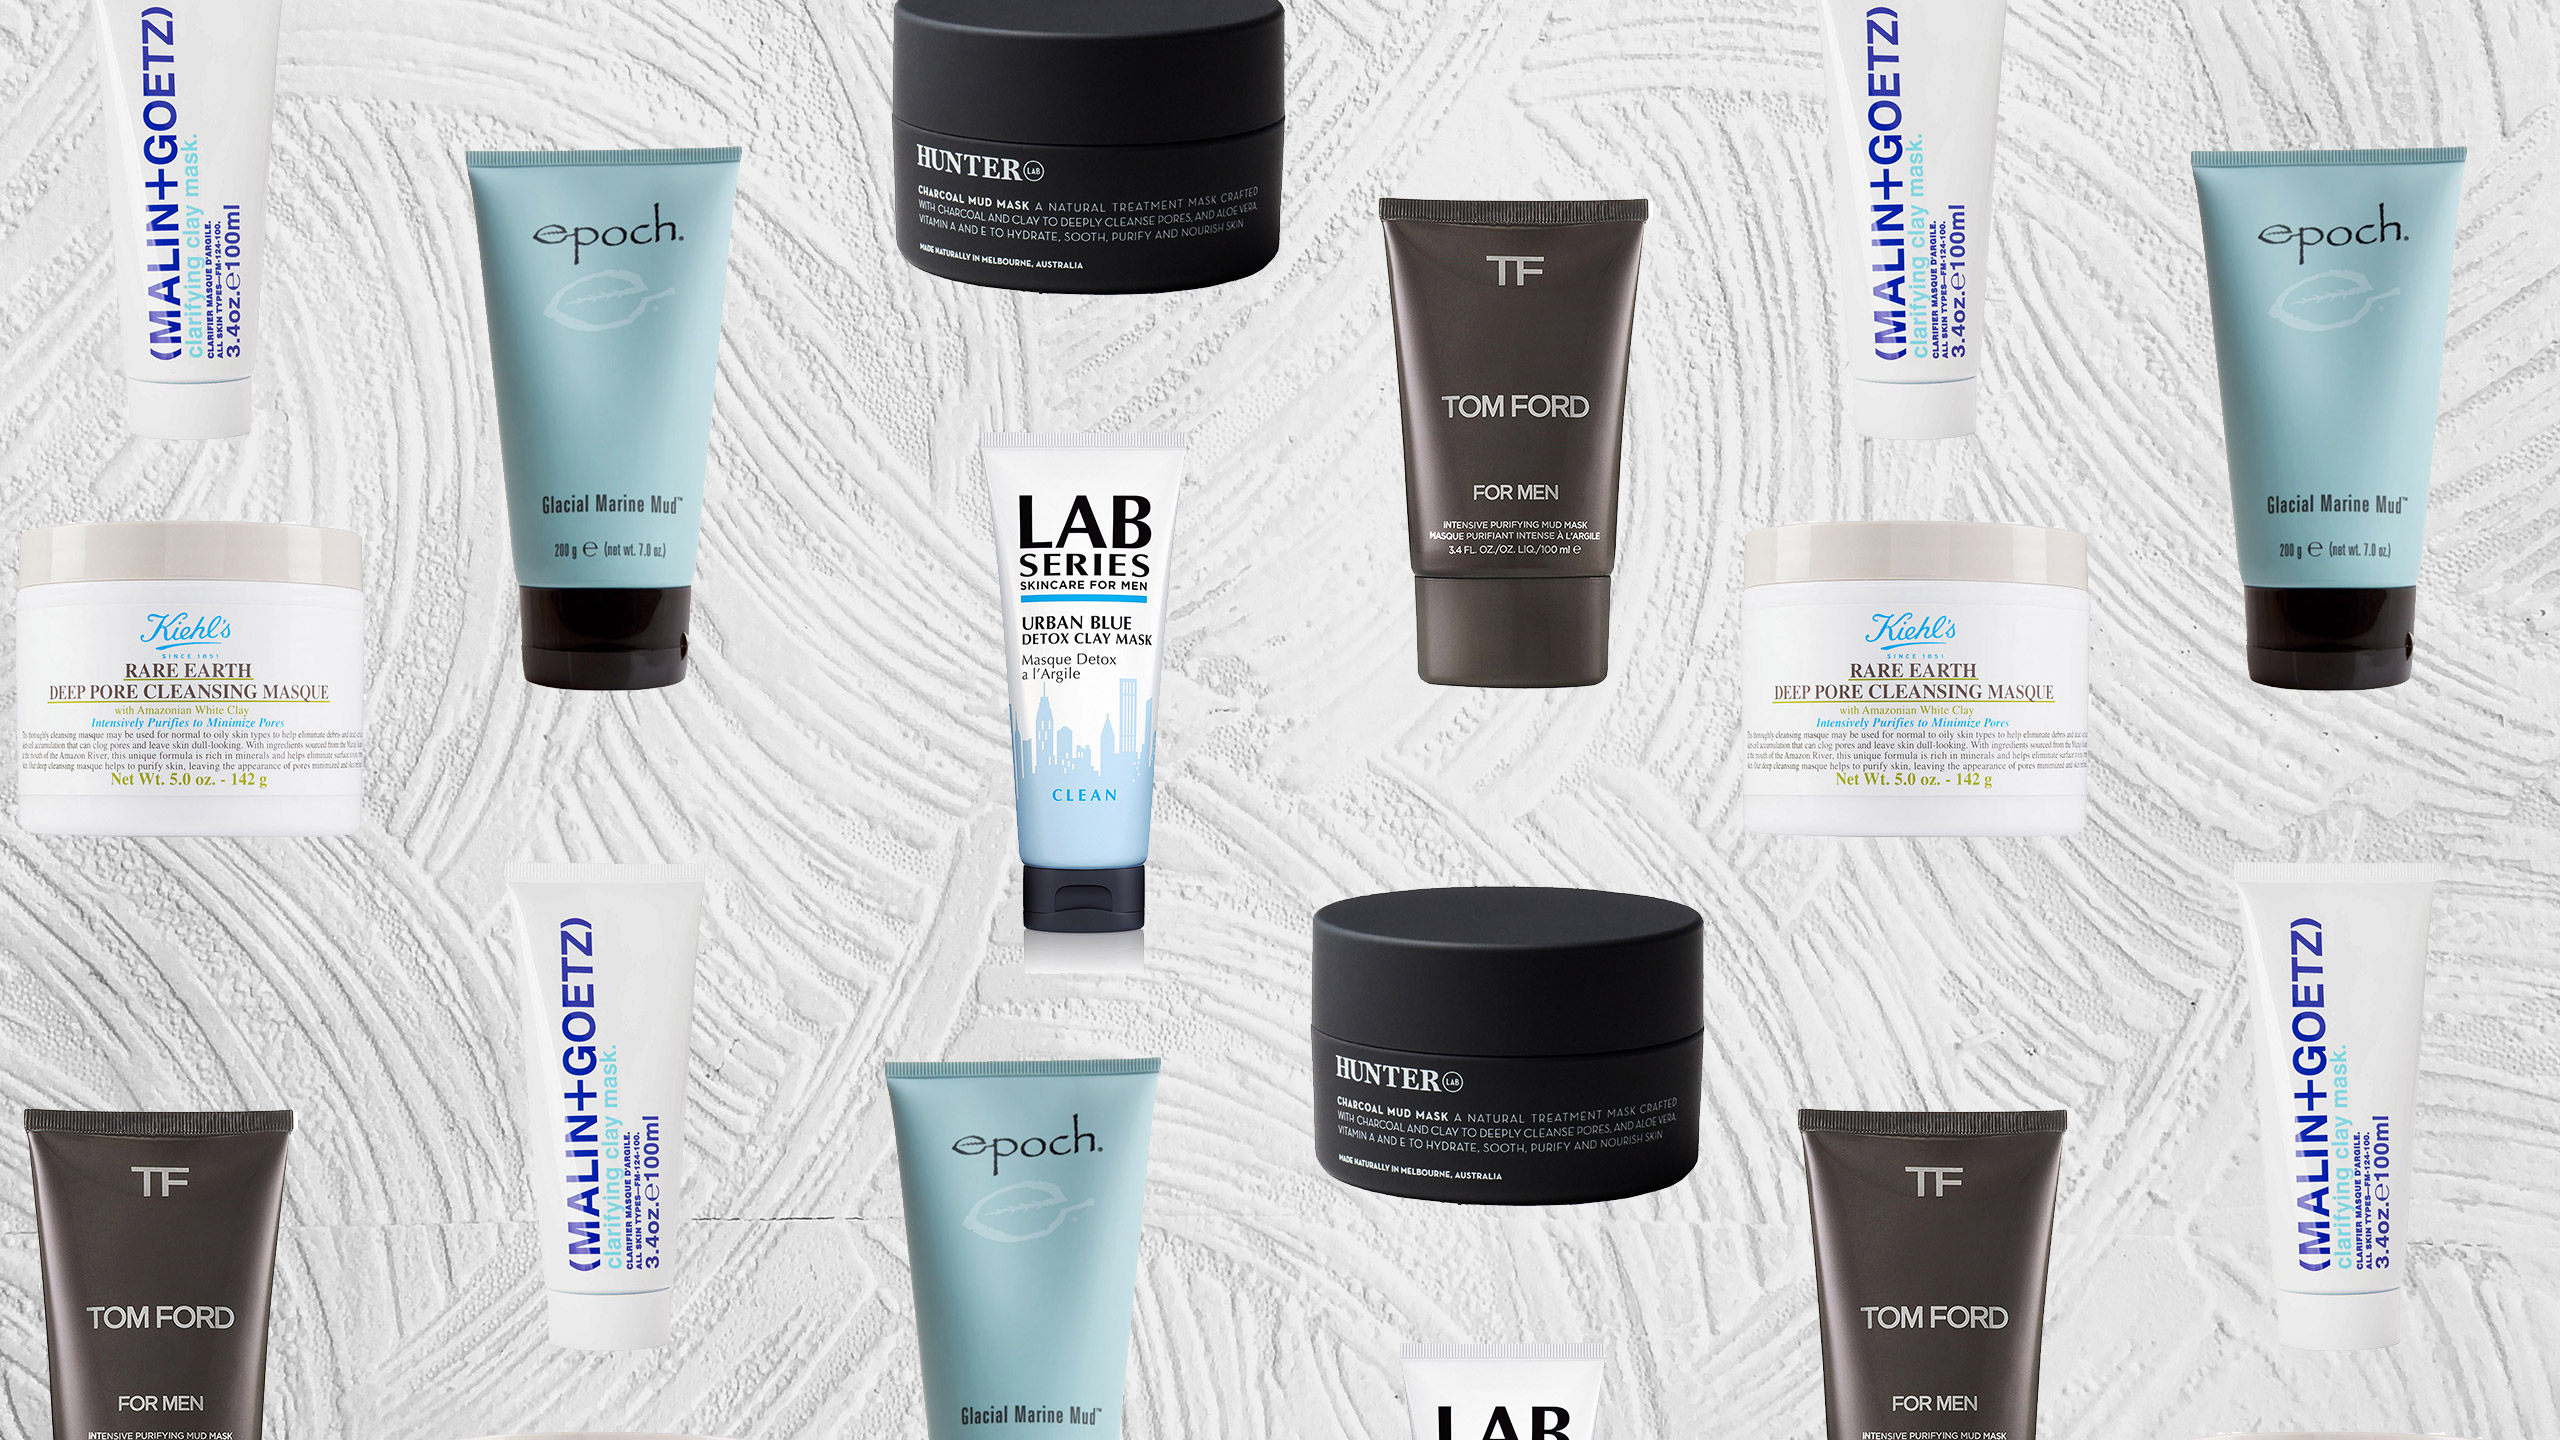 The best facial mud masks to detoxify your skin with